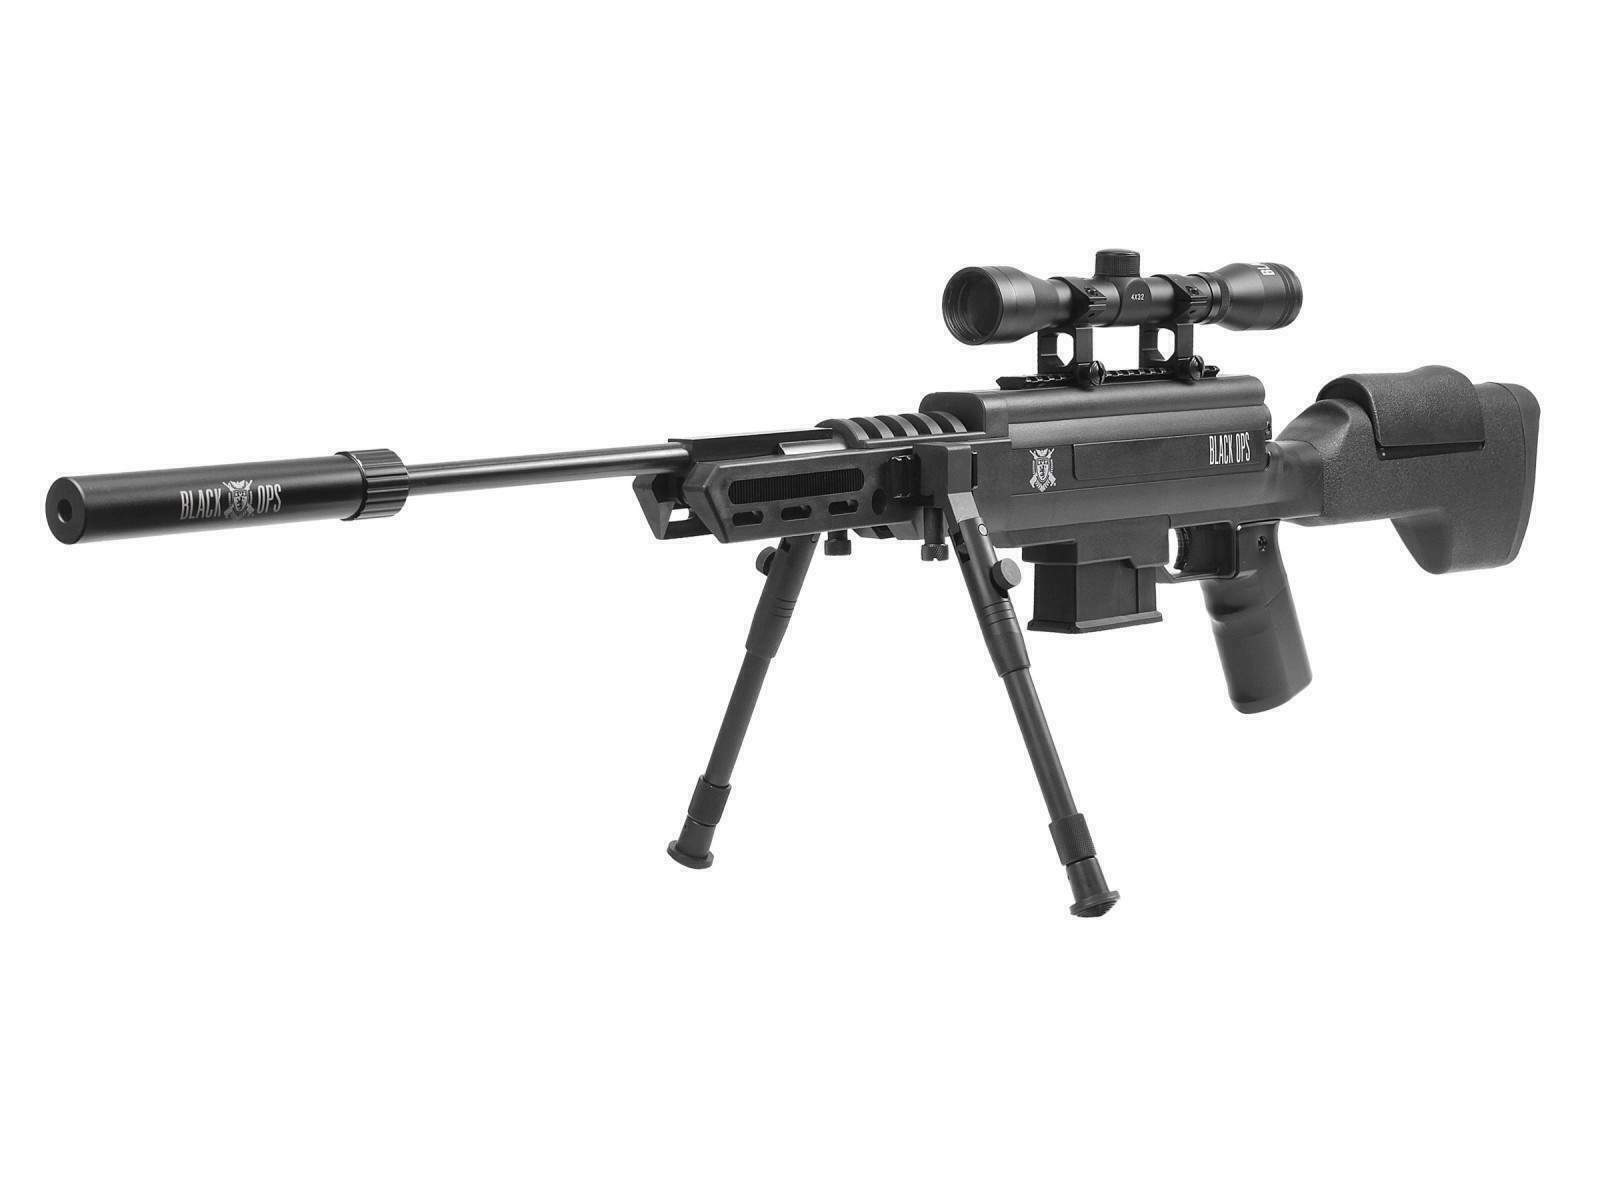 Black Ops Tactical Sniper Air Rifle Combo  22 Caliber With 4 X 32 Scope &  Bipod